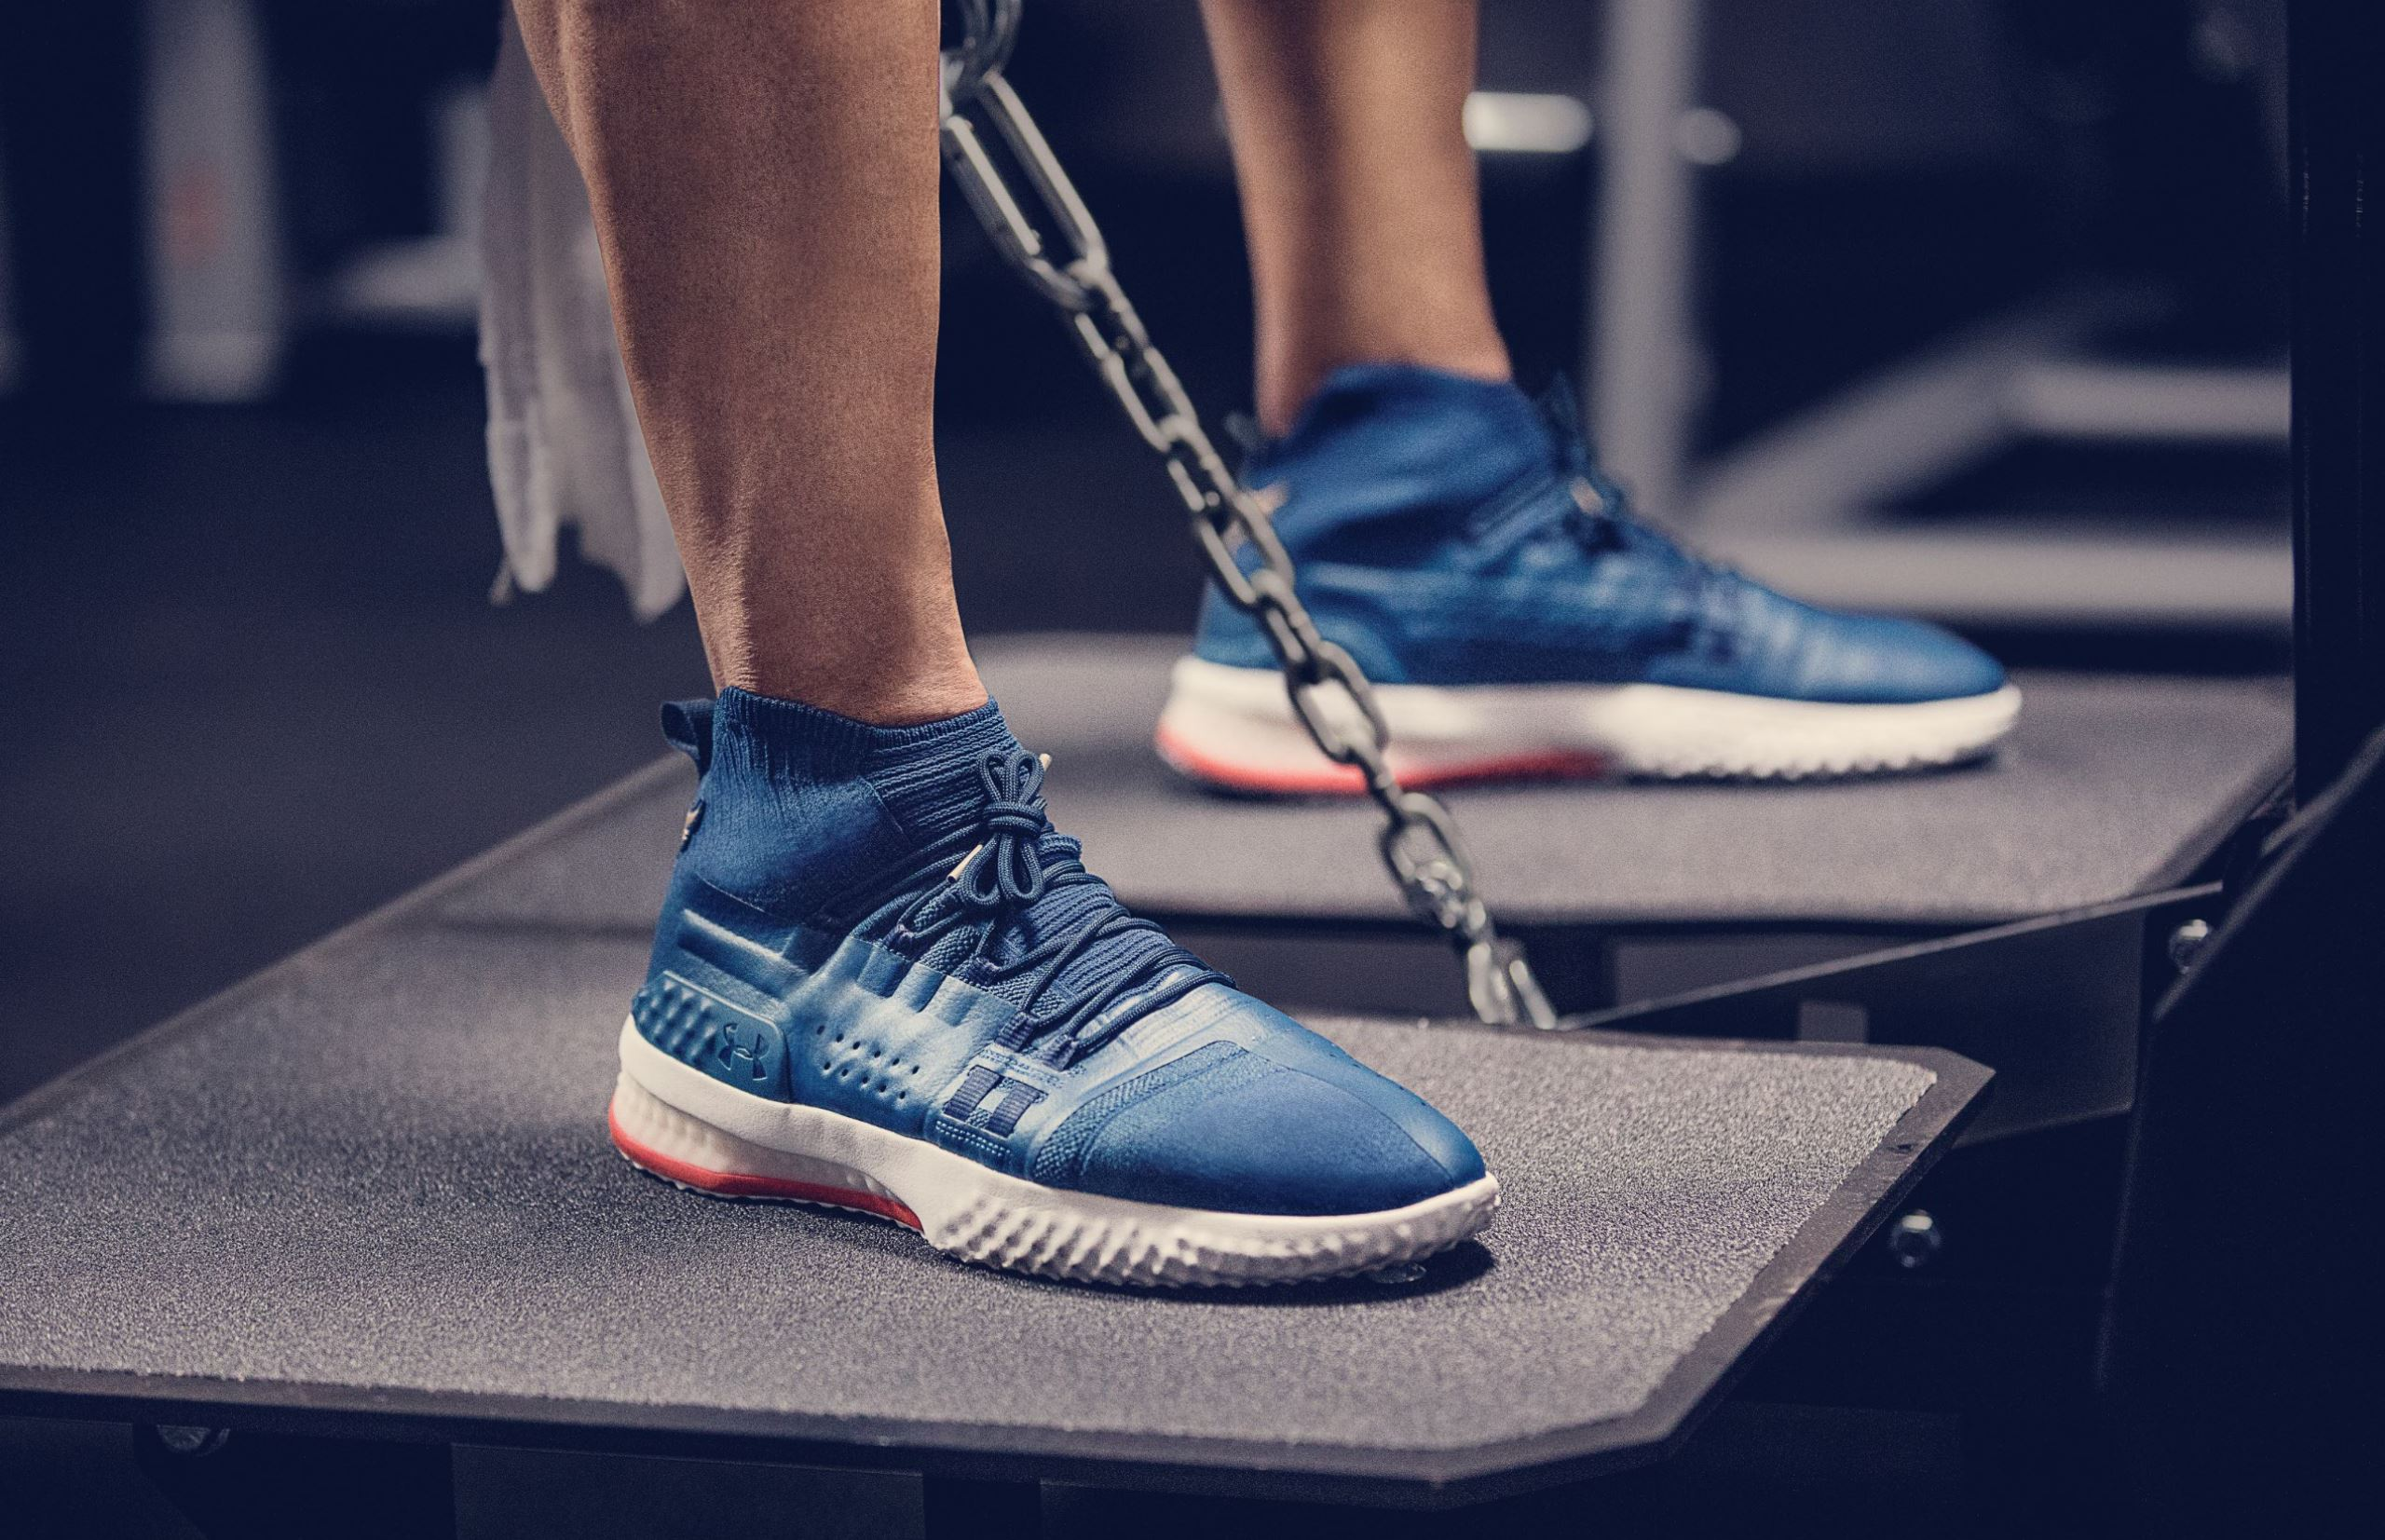 promo code d5f11 56011 dwayne johnson project rock 1 on foot · Kicks Off Court   Trainers   Under  Armour ...